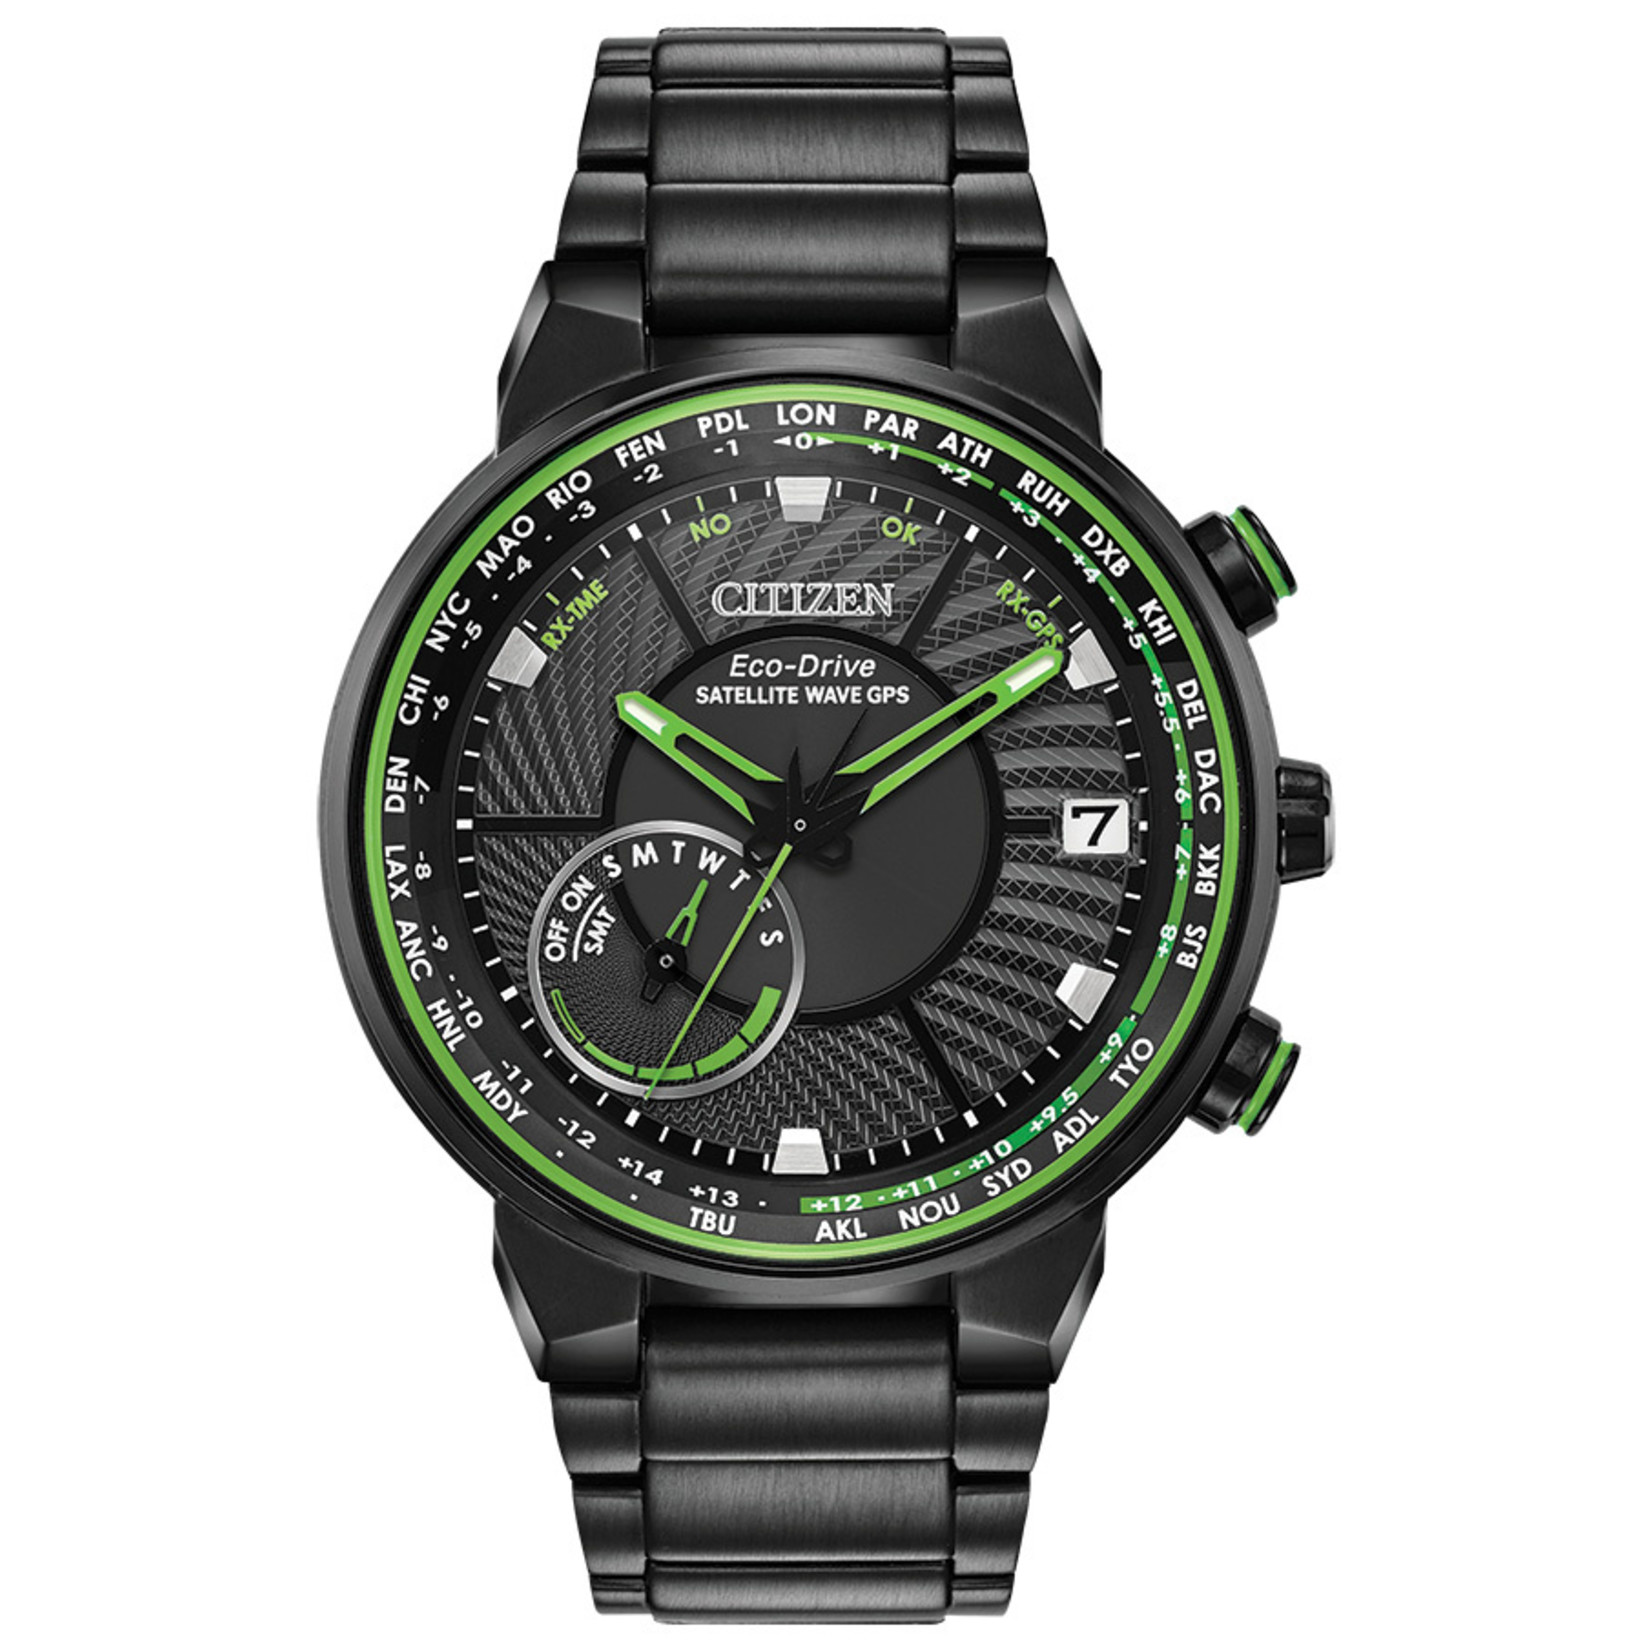 Citizen Citizen Satellite Wave GPS Freedom Watch